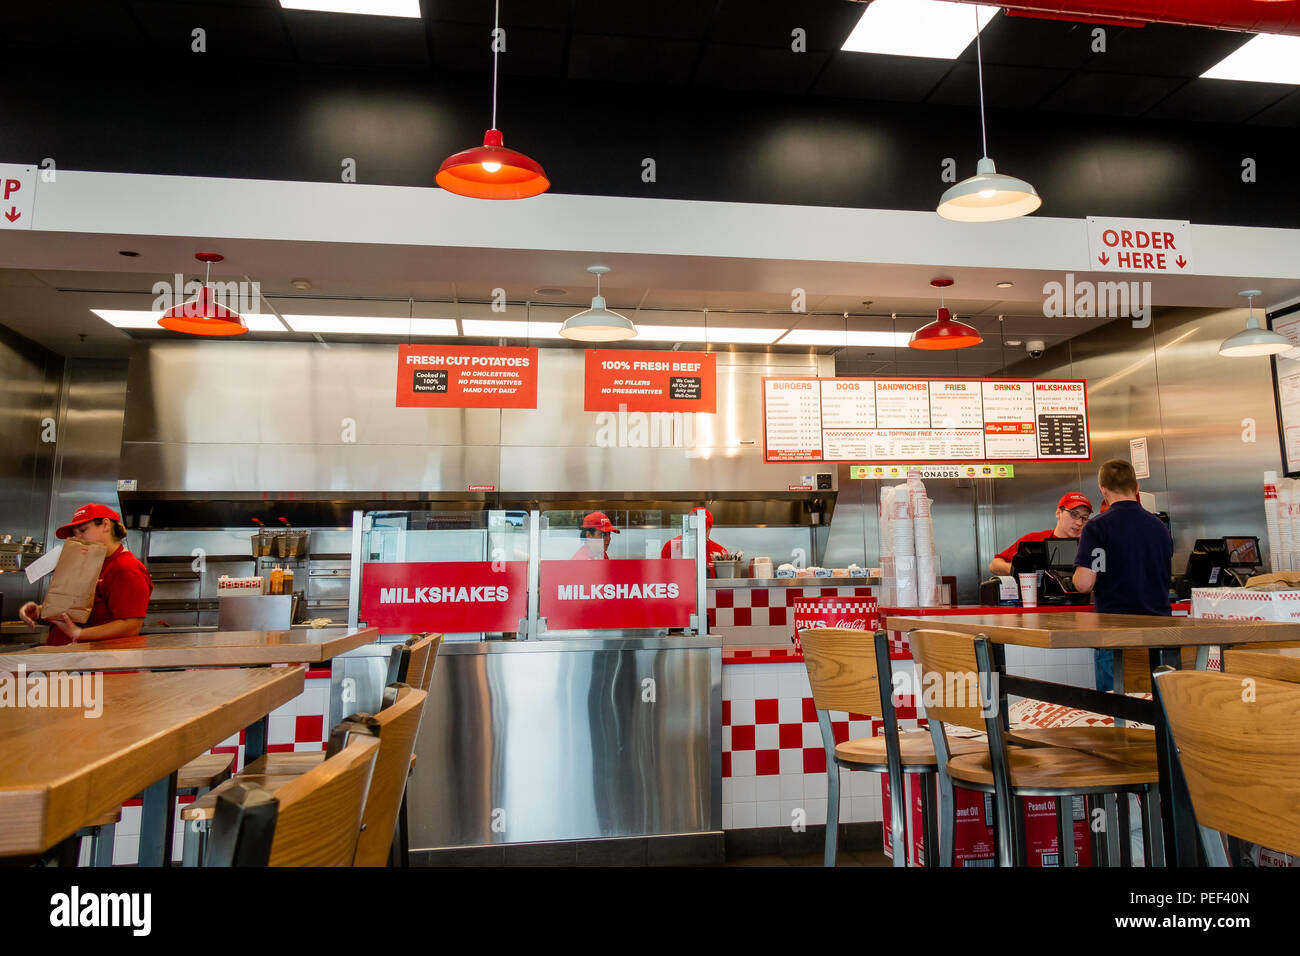 The interior of a Five Guys burger restaurant in Utica, NY USA - Stock Image